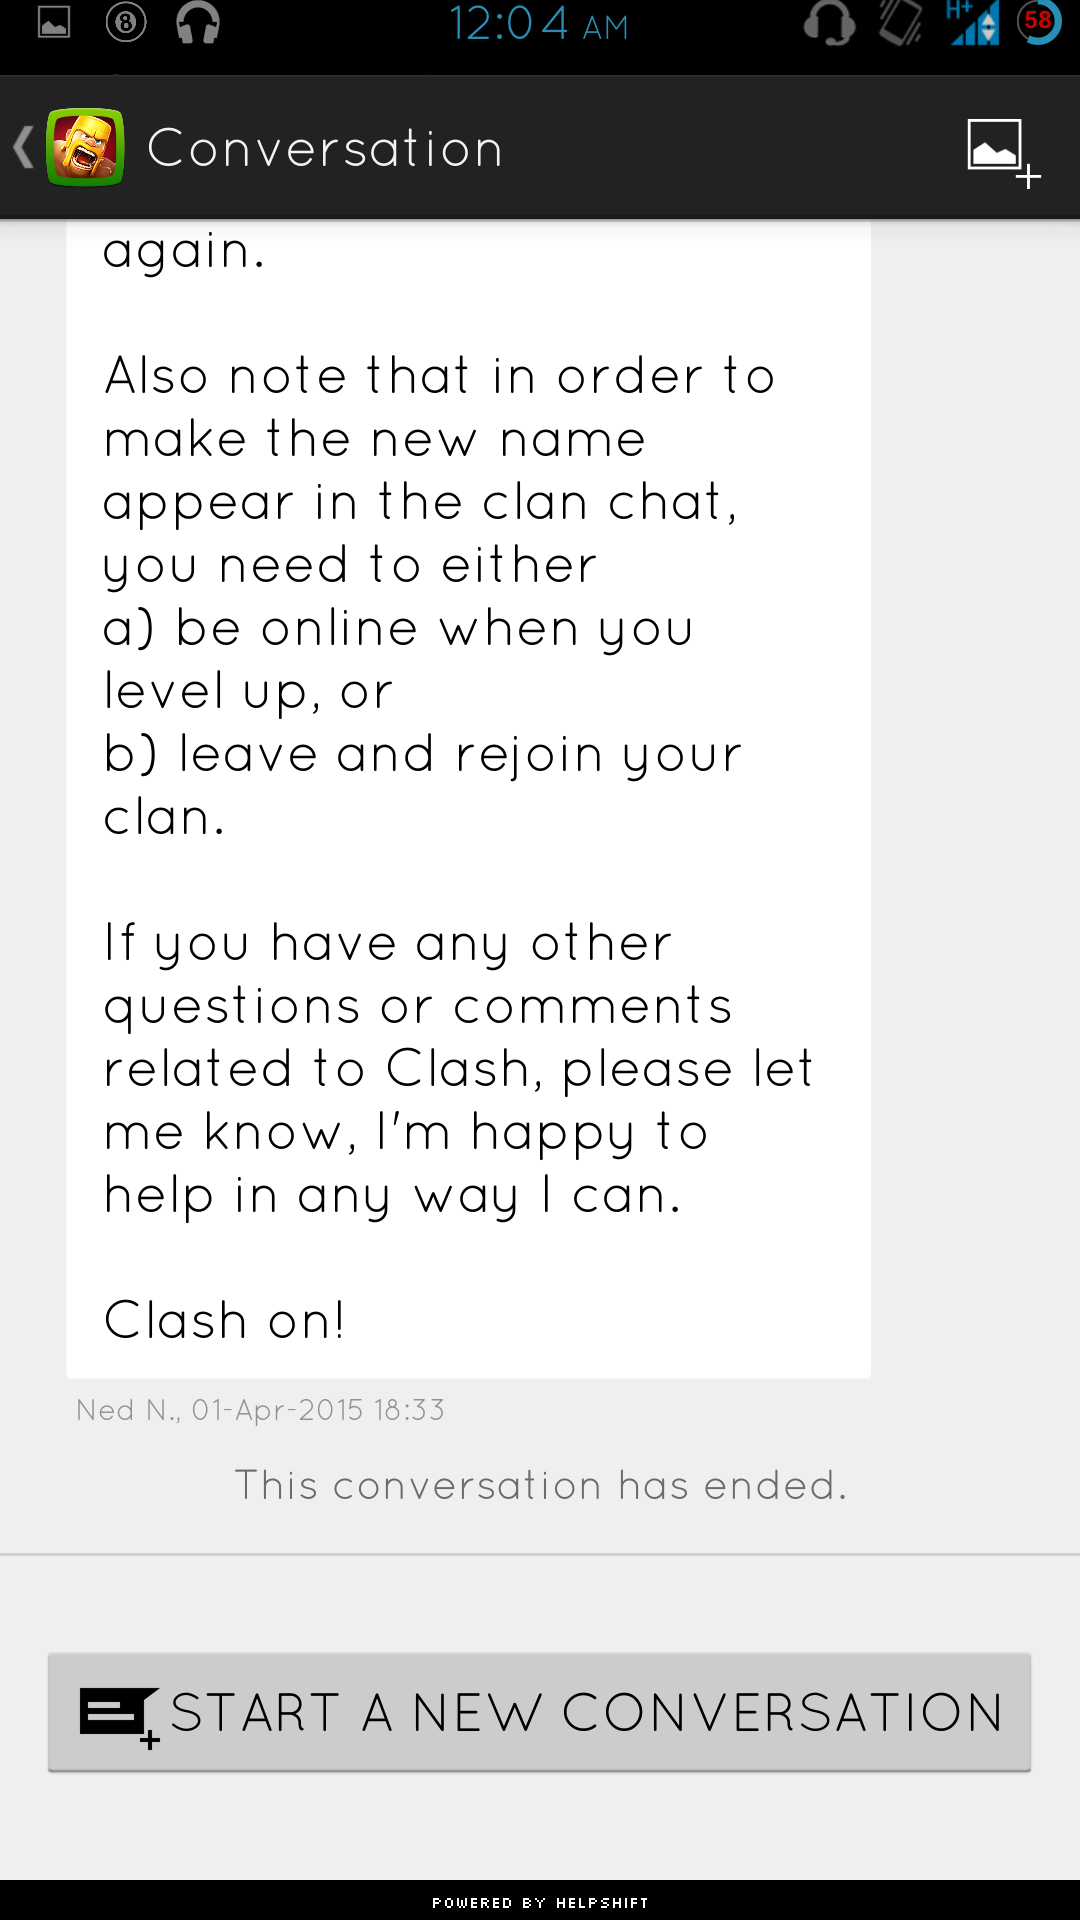 Cool names for clash of clans profile pictures - messier 46 x-ray images